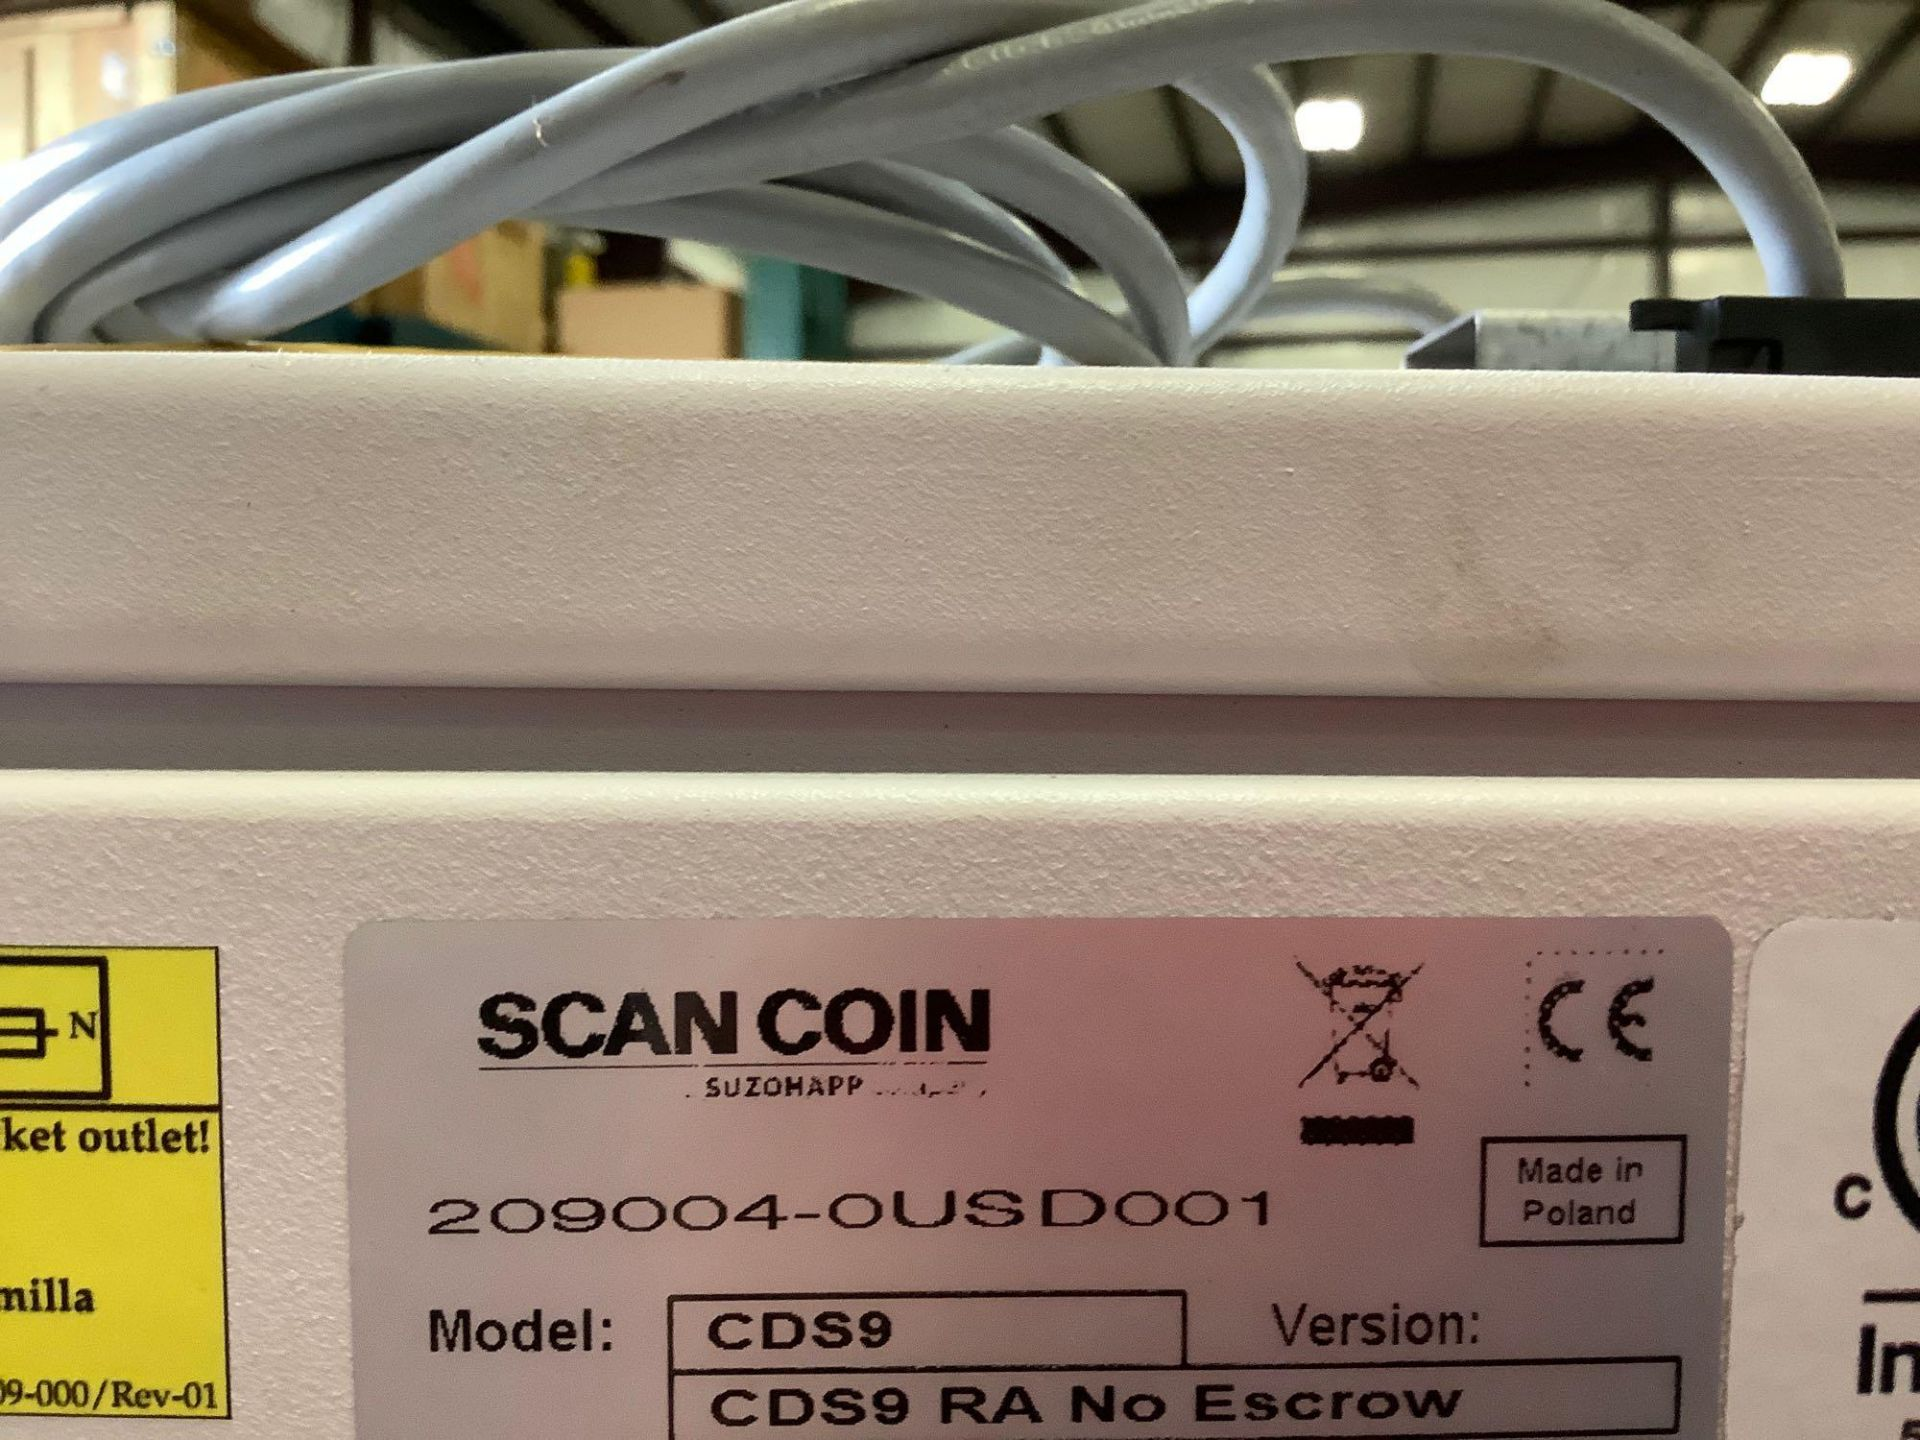 SCAN COIN MACHINE MODEL CDS9, APPROX AMP 4.0-2.0 A, APPROX VAC 90-240, APPROX HZ 60 - Image 12 of 12